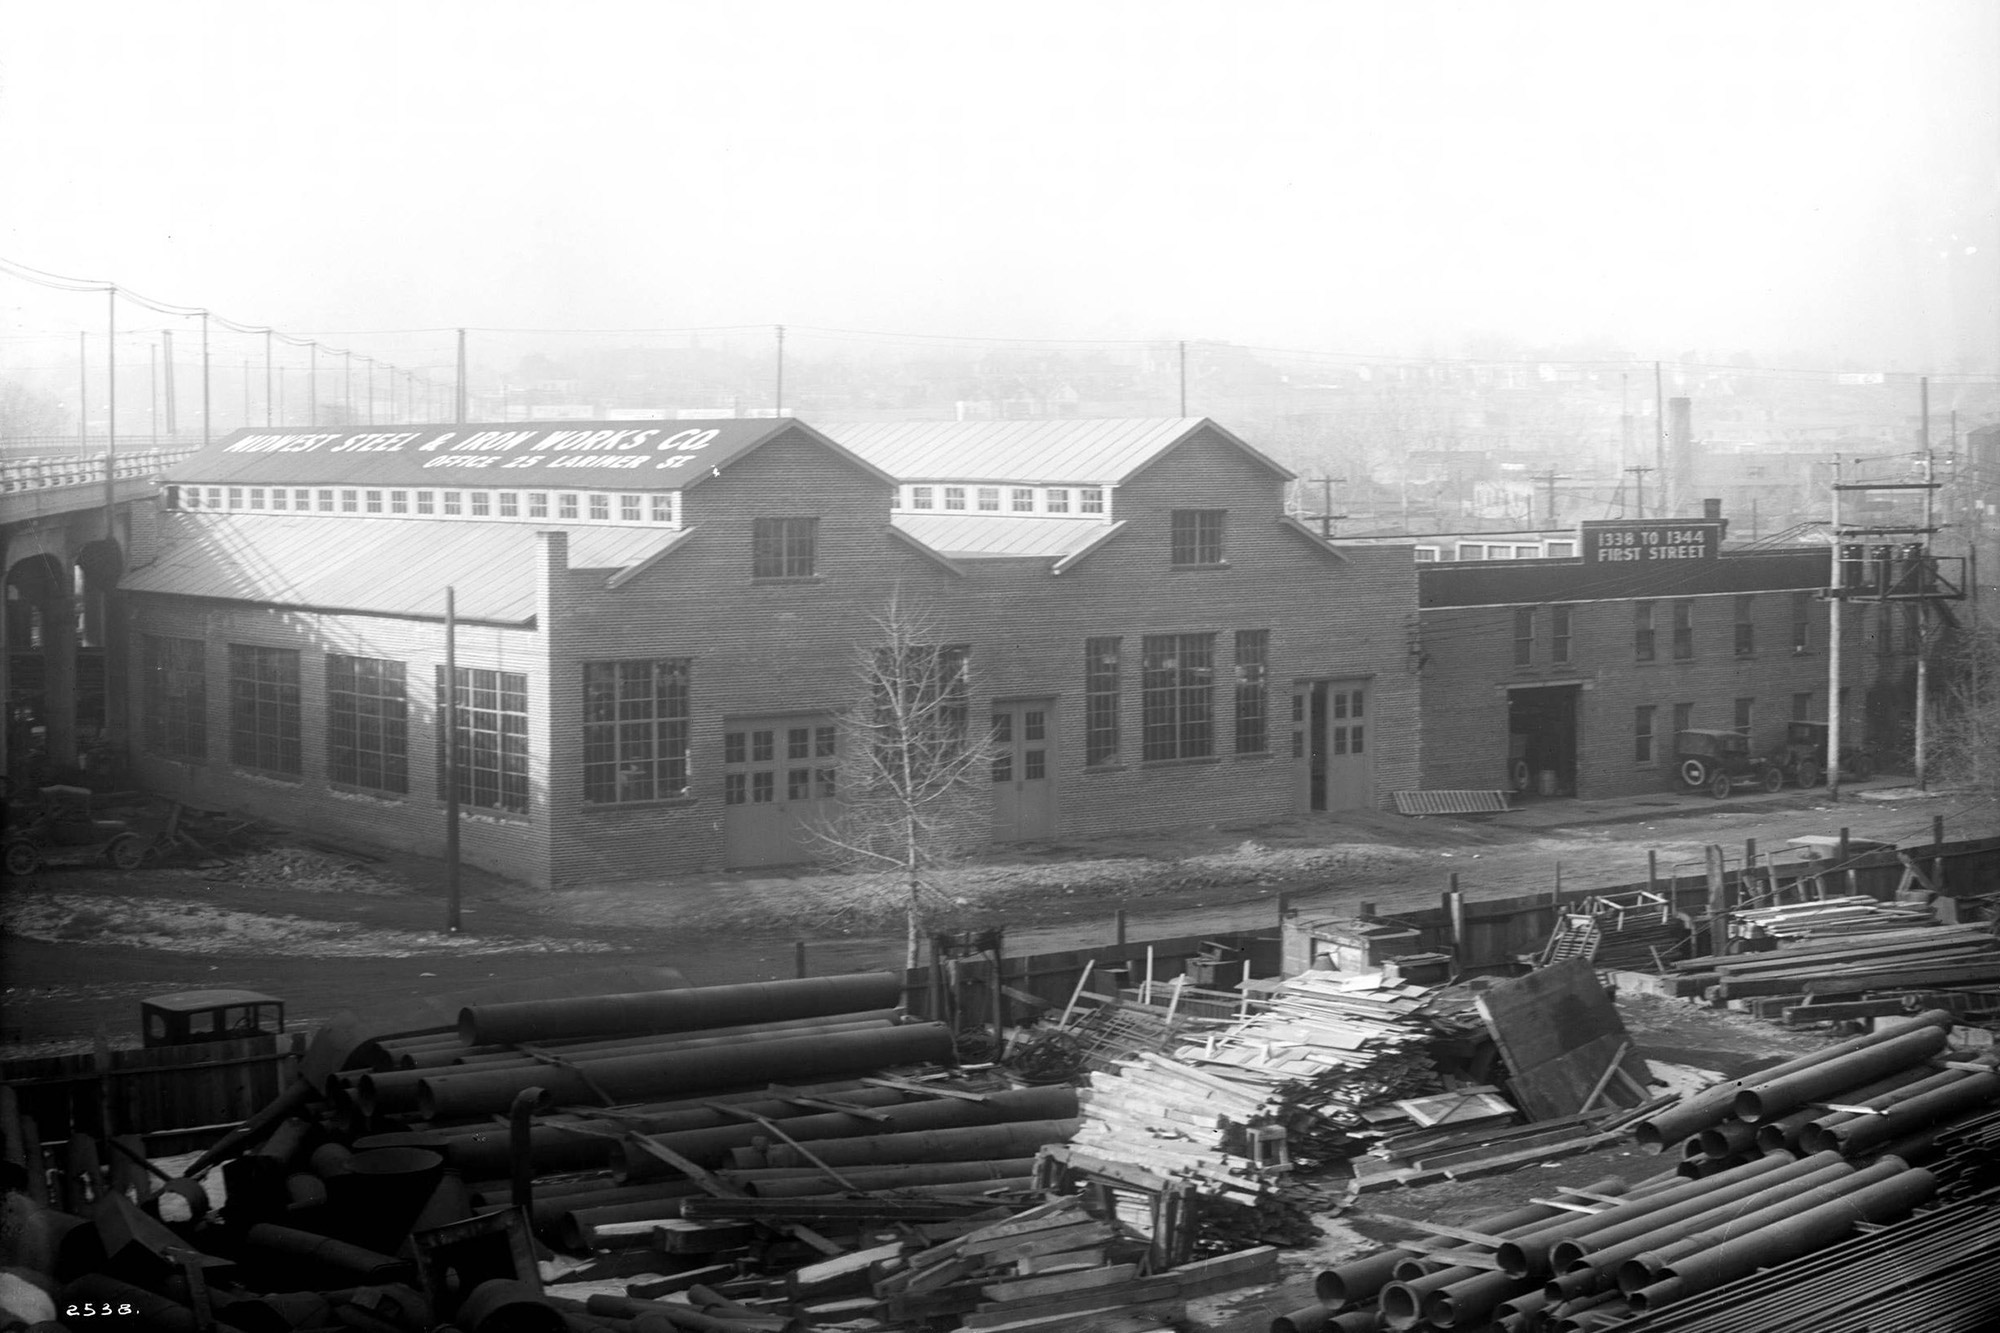 Midwest Steel buildings along 1st Street in the early 1920s, courtesy of Denver Public Library